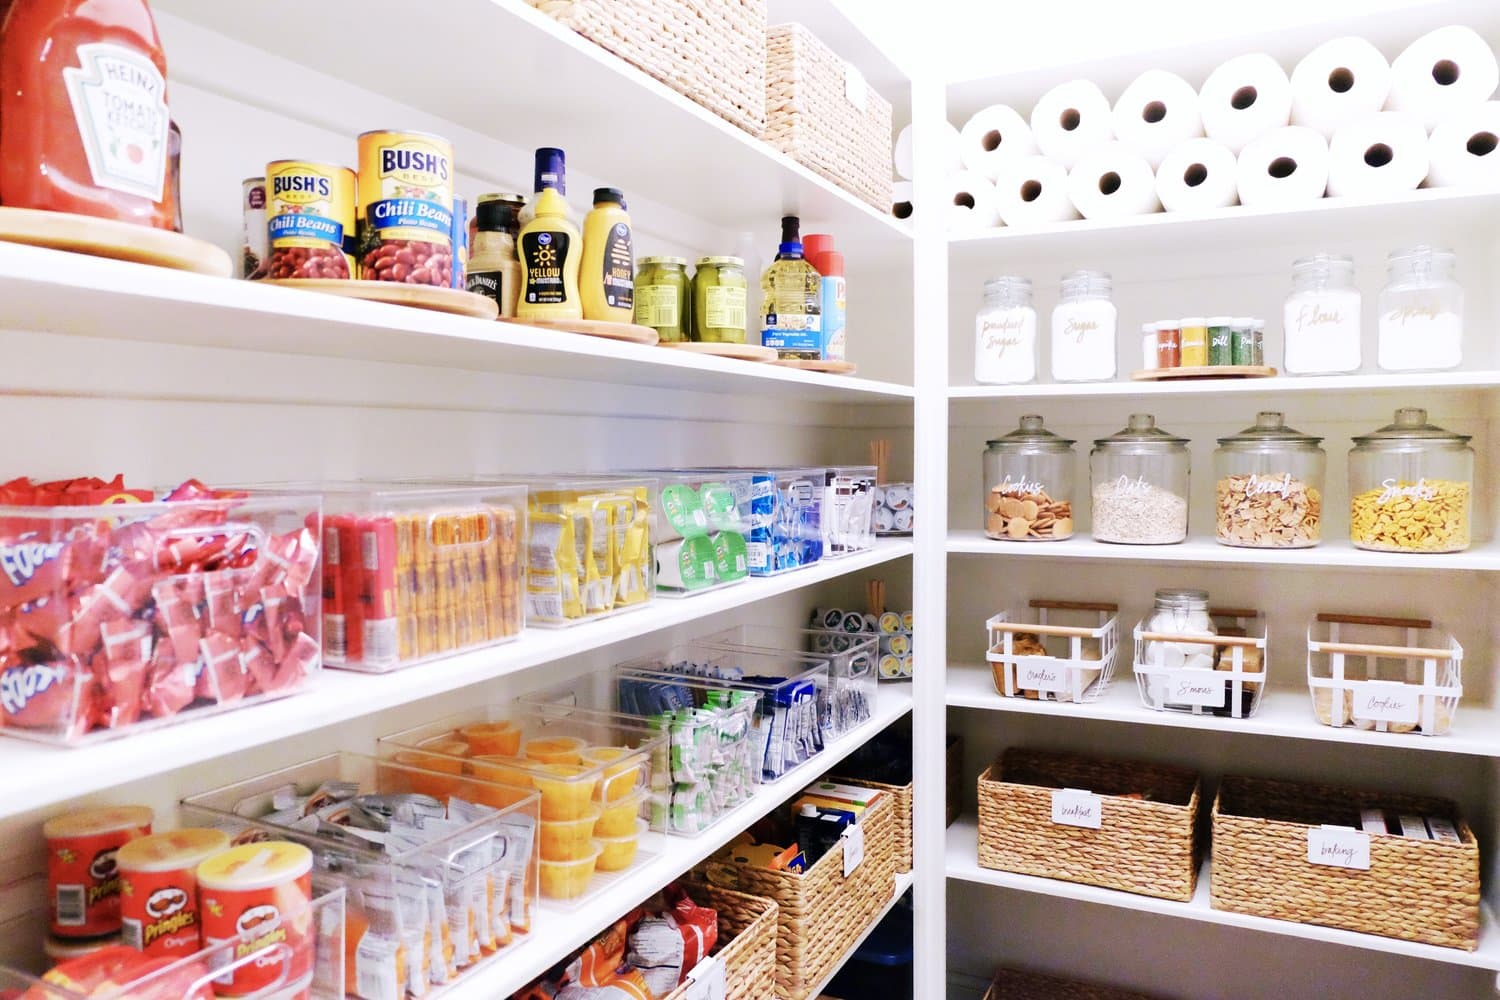 The Home Edit (Yes, from Netflix!) Has Tons of Organizing Essentials That You Can Buy for Your Own Kitchen